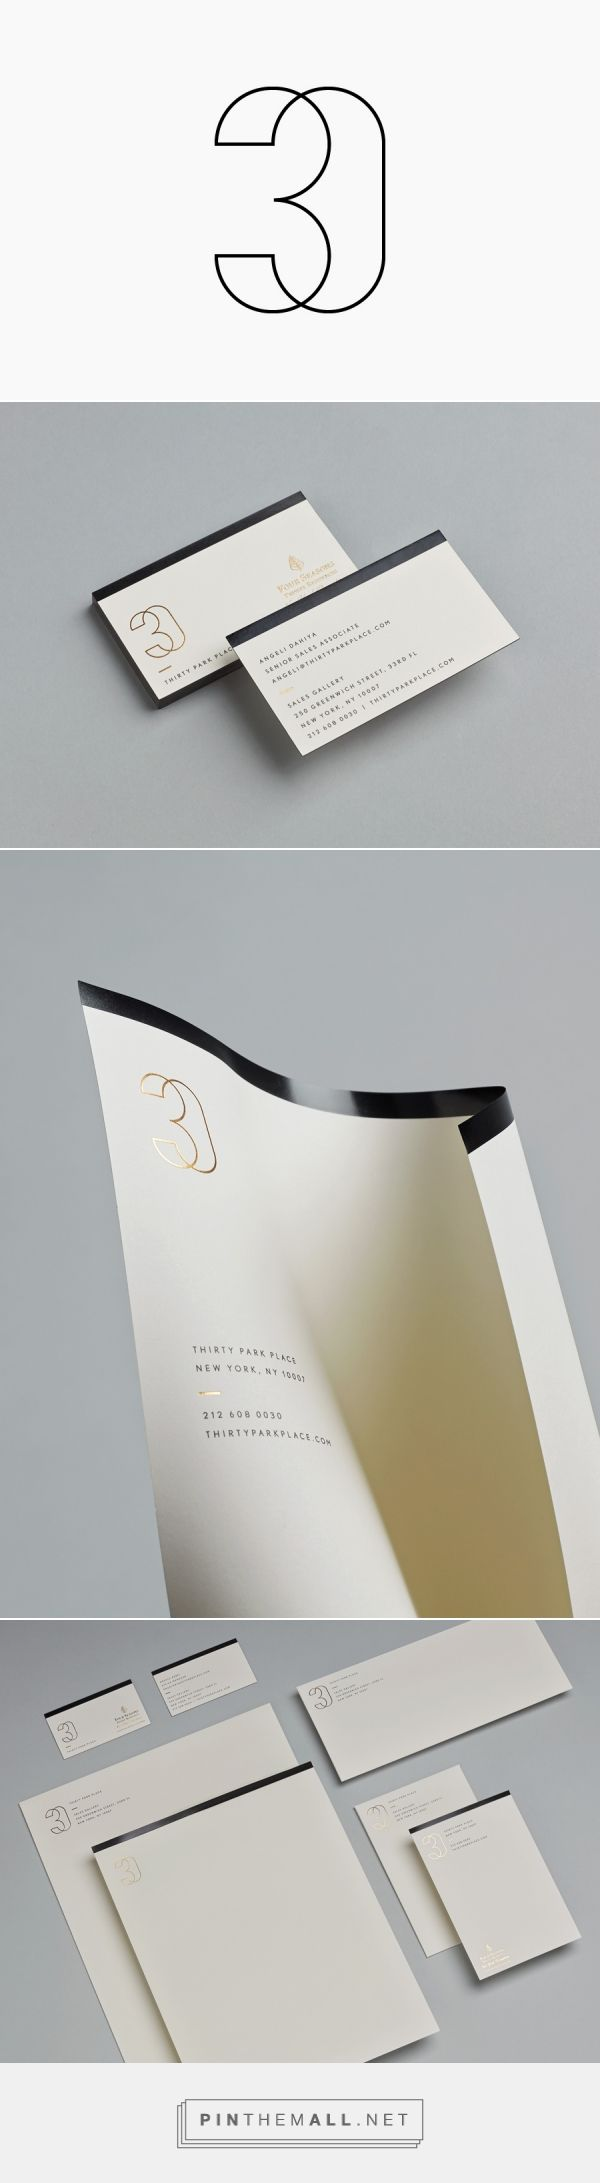 New logo for 30 park place by mother design bp o a grouped images picture